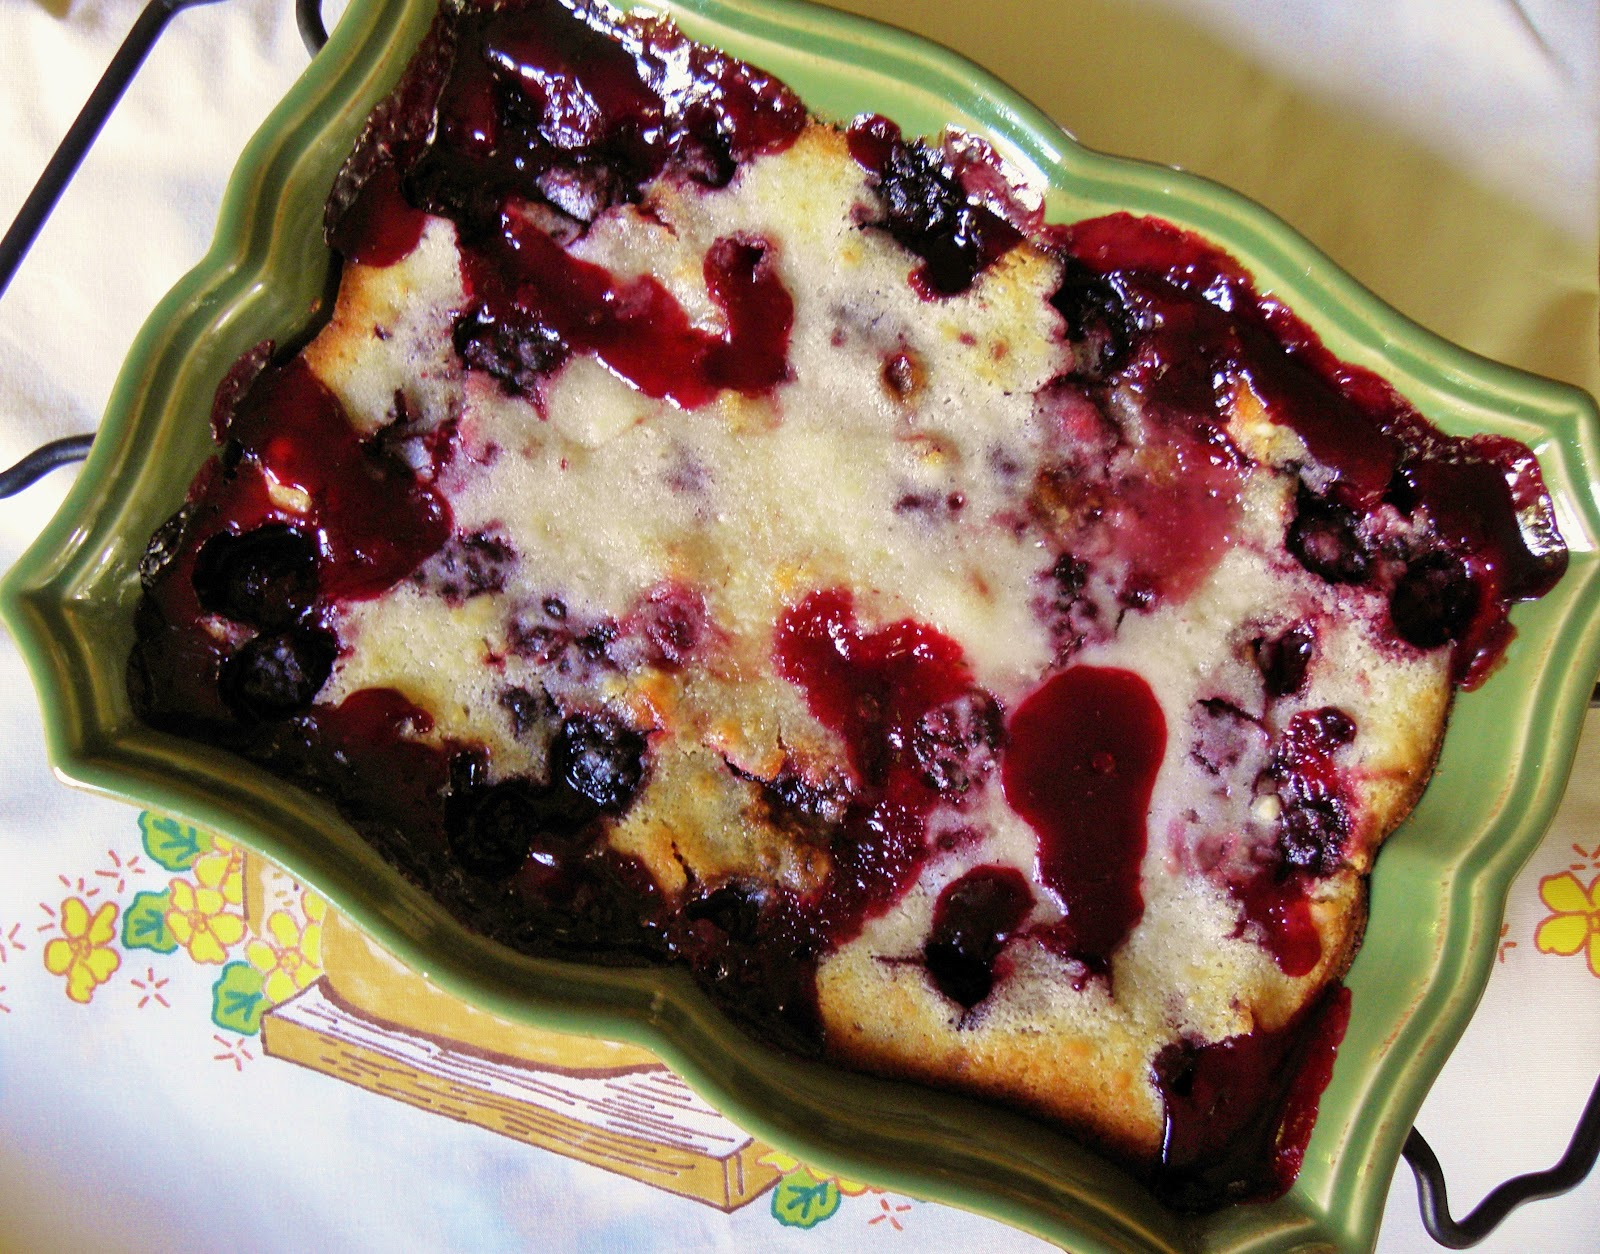 The Cozy Little Kitchen: Faith's Country Blackberry Cobbler!